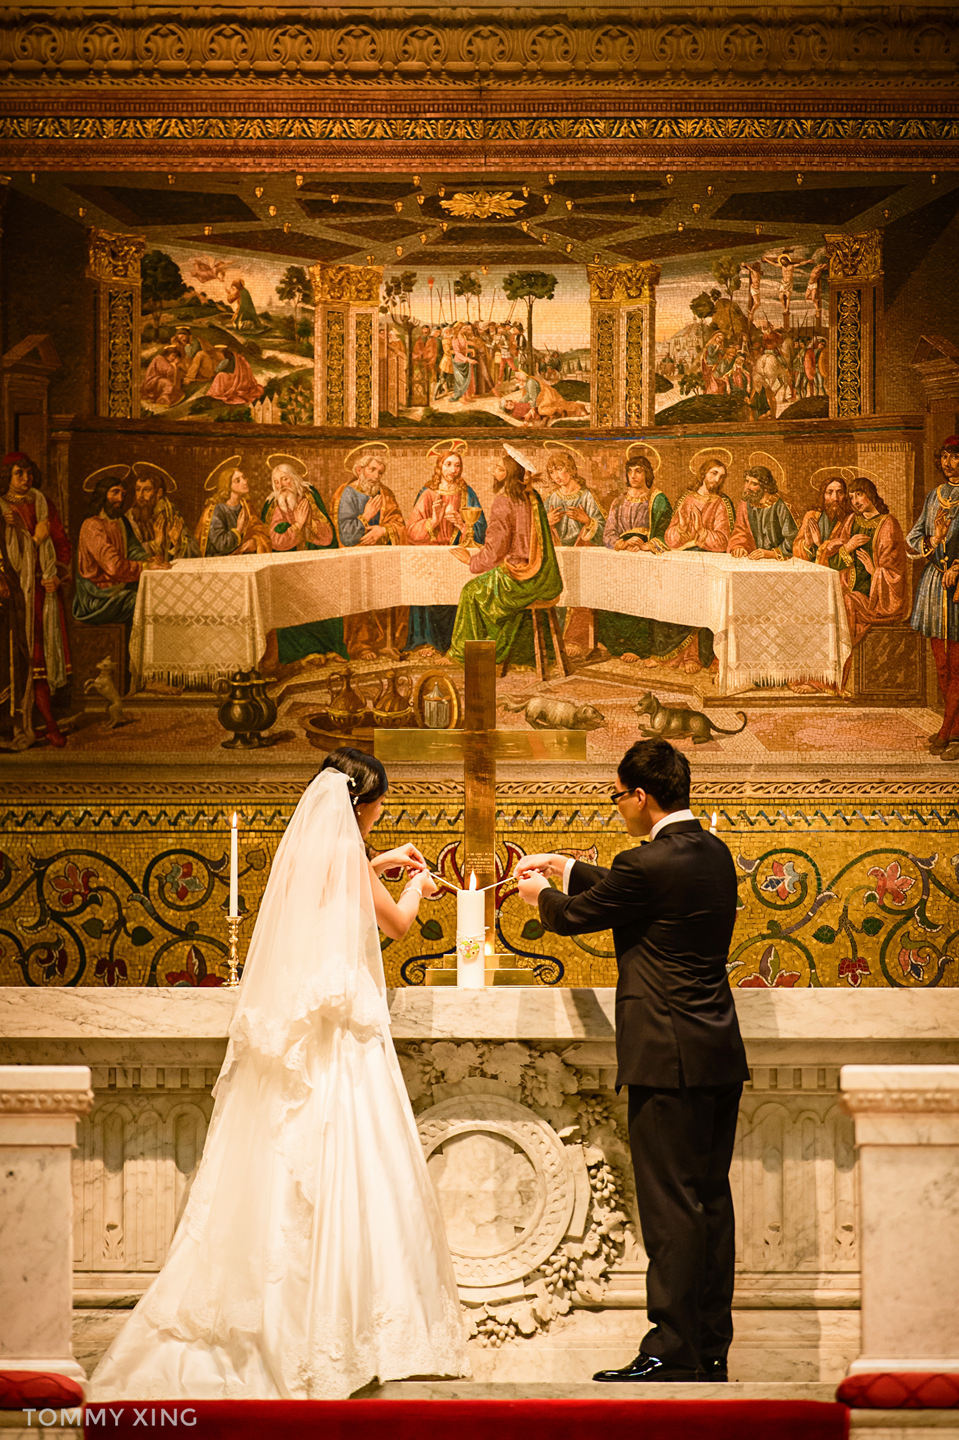 STANFORD MEMORIAL CHURCH WEDDING SAN FRANCISCO BAY AREA 斯坦福教堂婚礼 洛杉矶婚礼婚纱摄影师  Tommy Xing 46.jpg